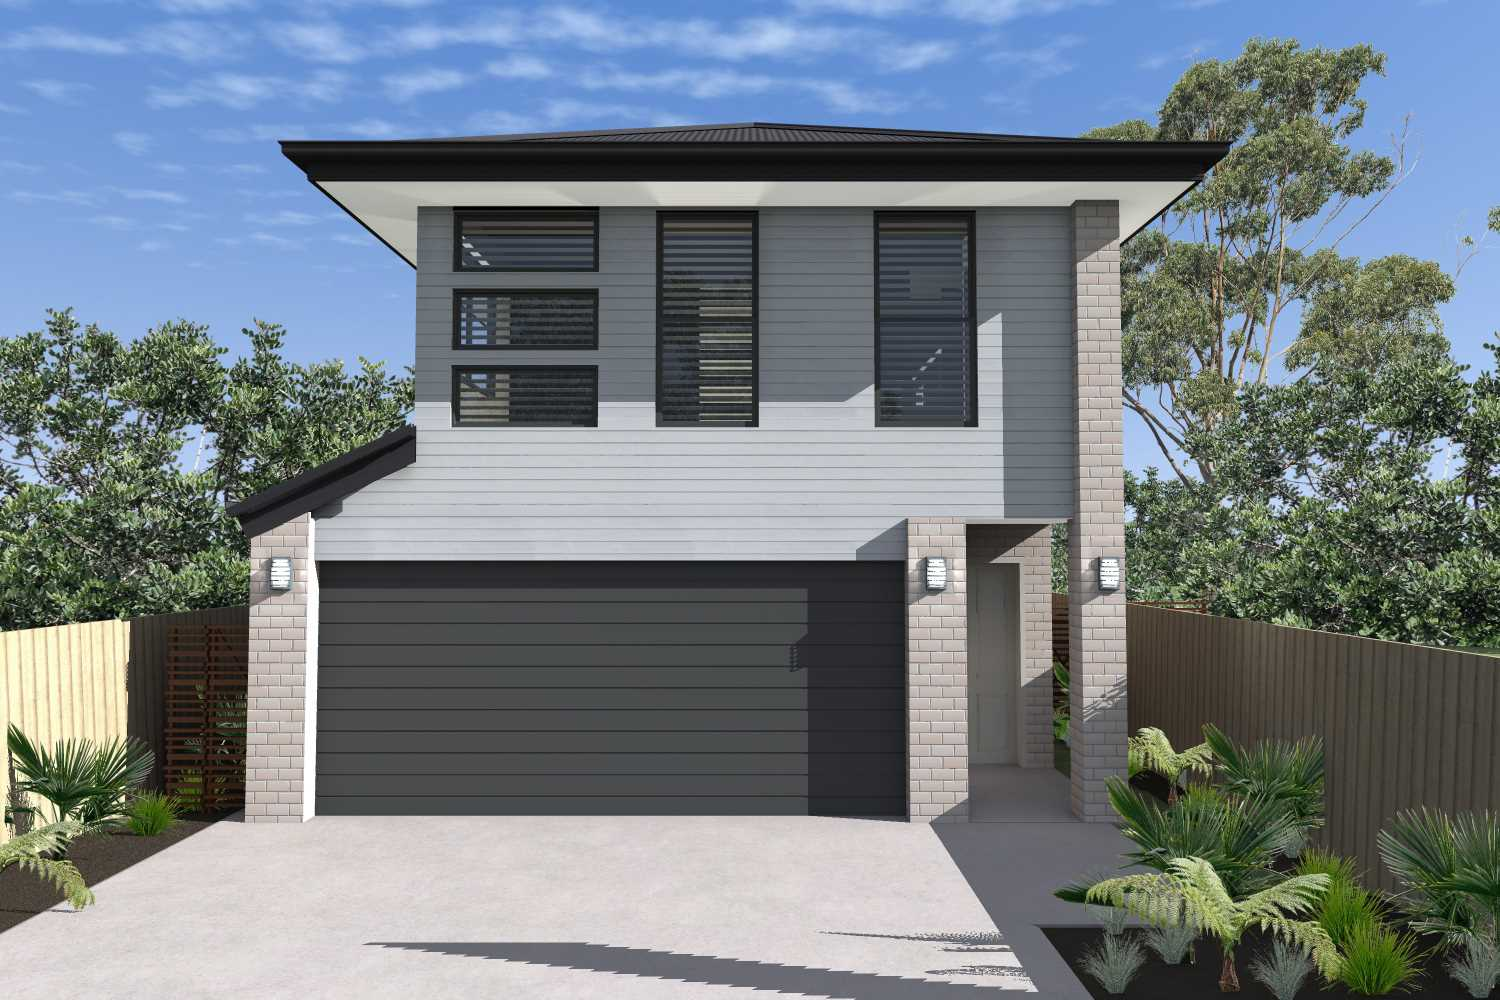 Location, Convenience & a Brand New Home!